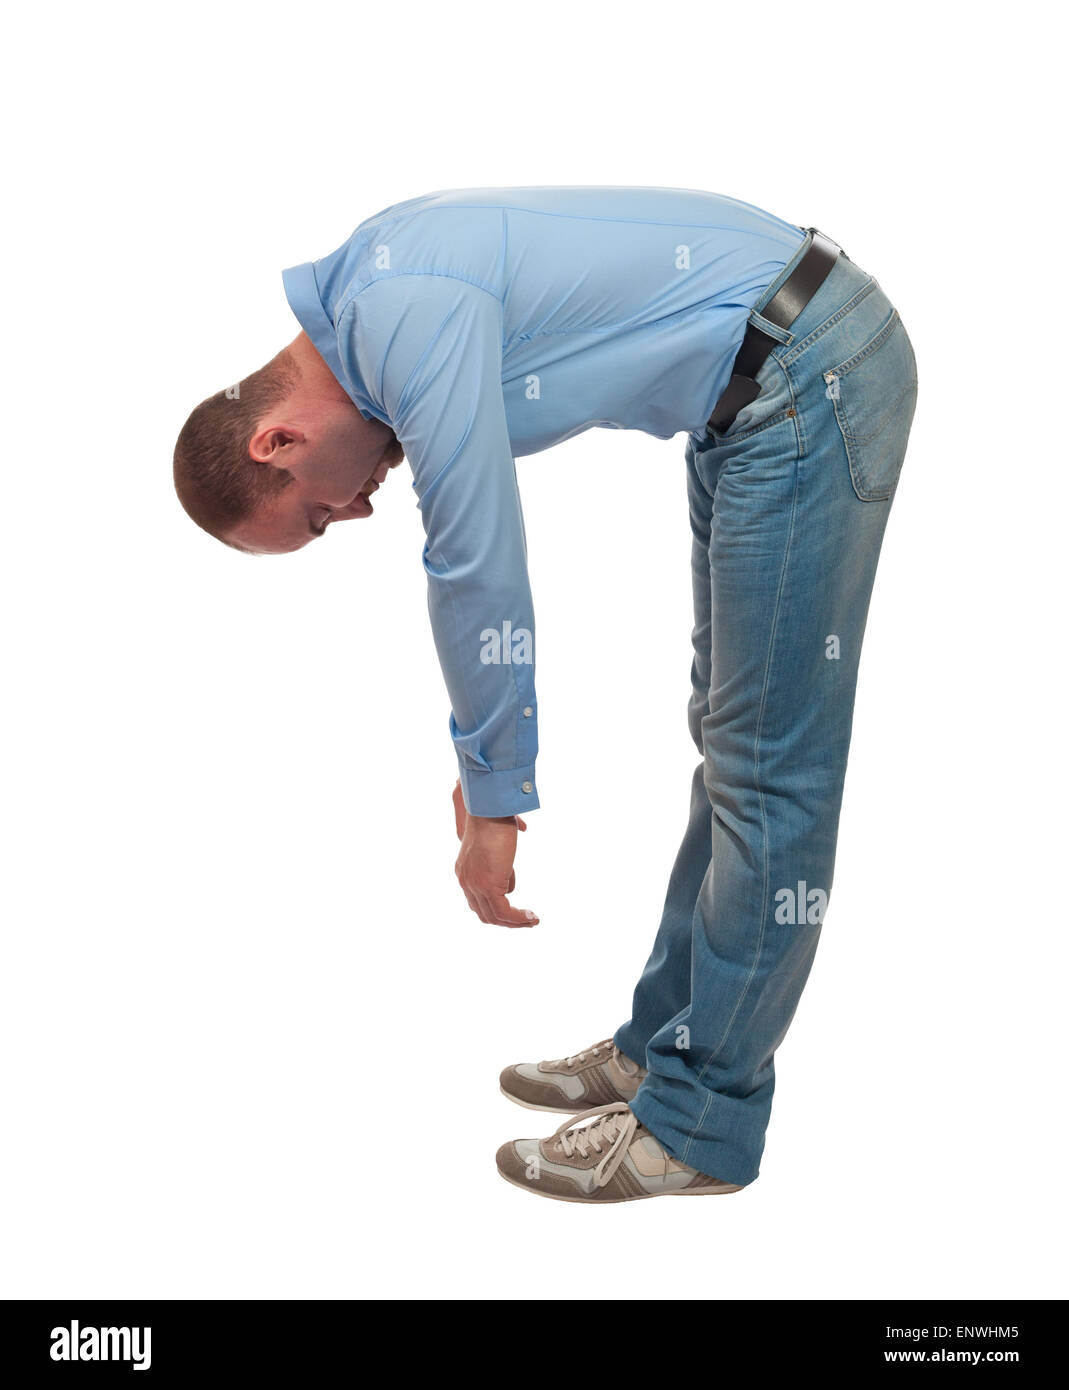 tired bend man isolated on white background - Stock Image